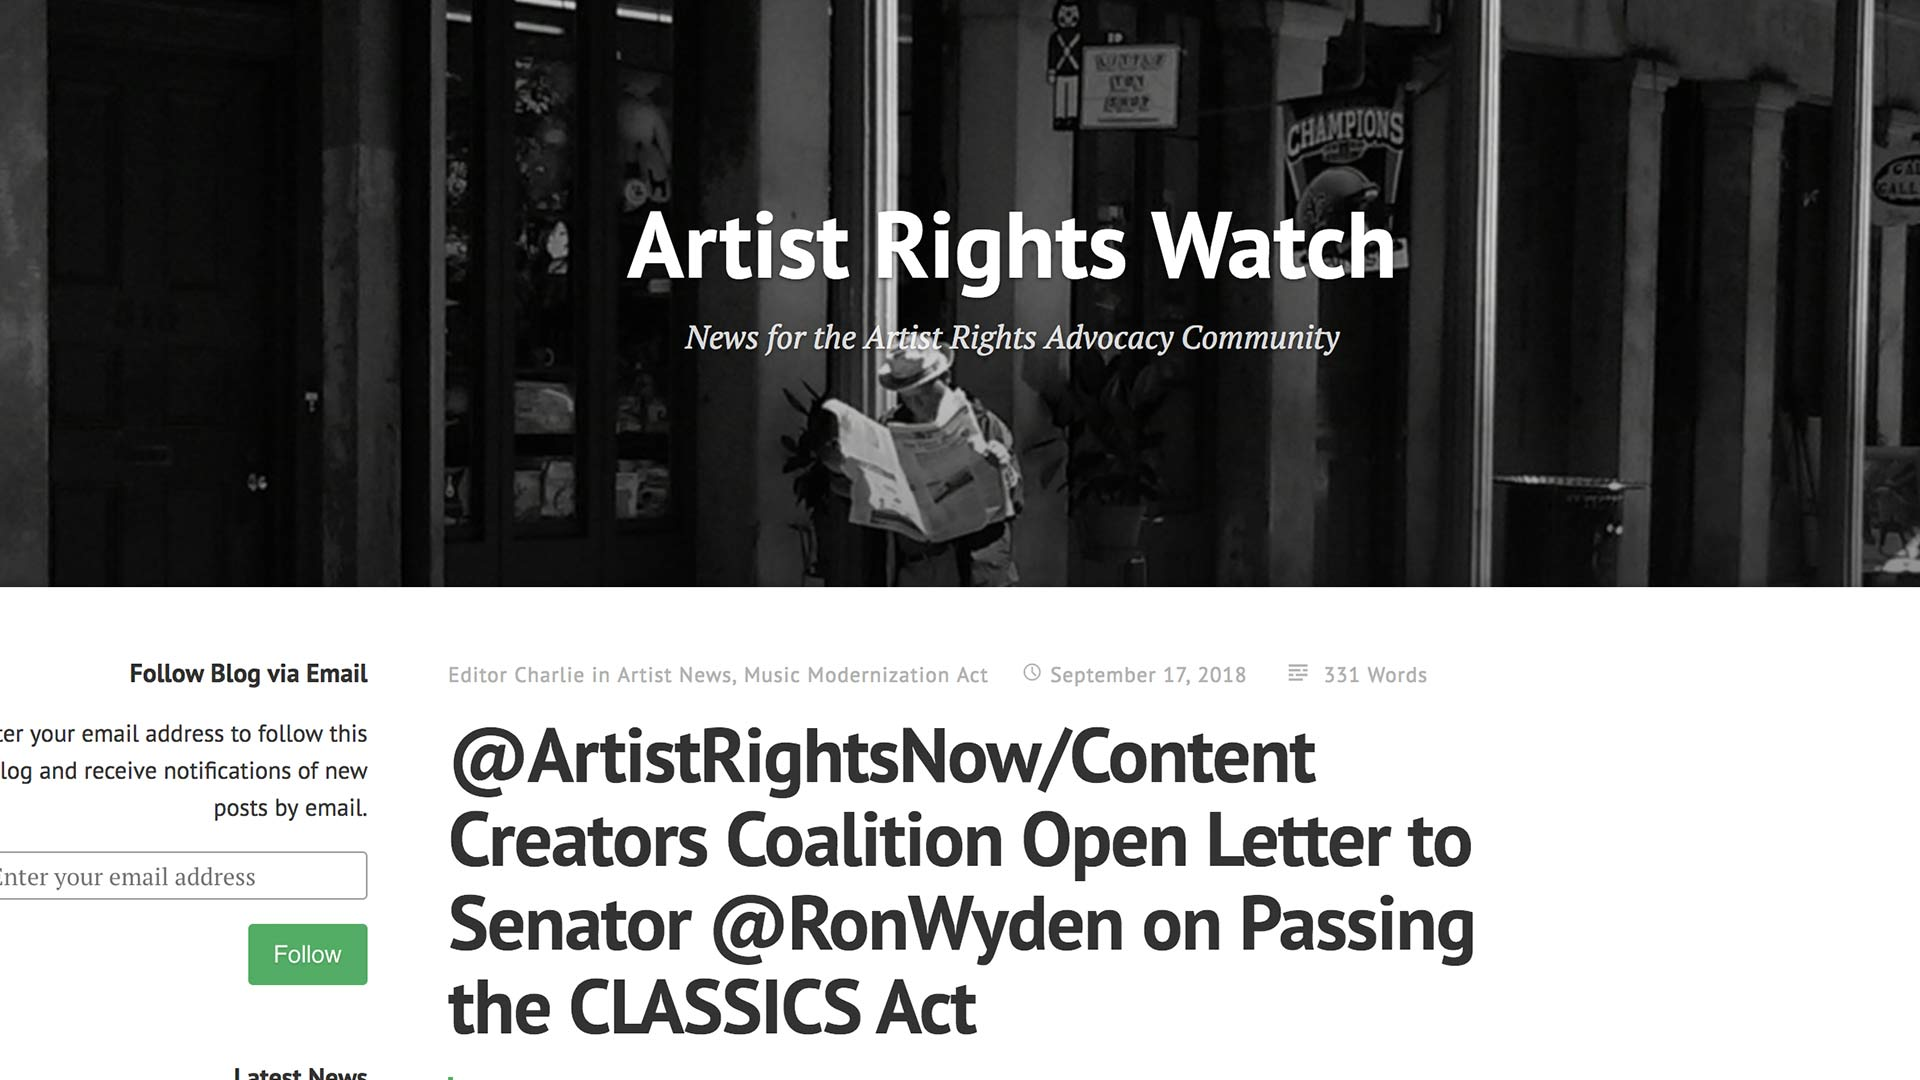 Fairness Rocks News @ArtistRightsNow/Content Creators Coalition Open Letter to Senator @RonWyden on Passing the CLASSICS Act